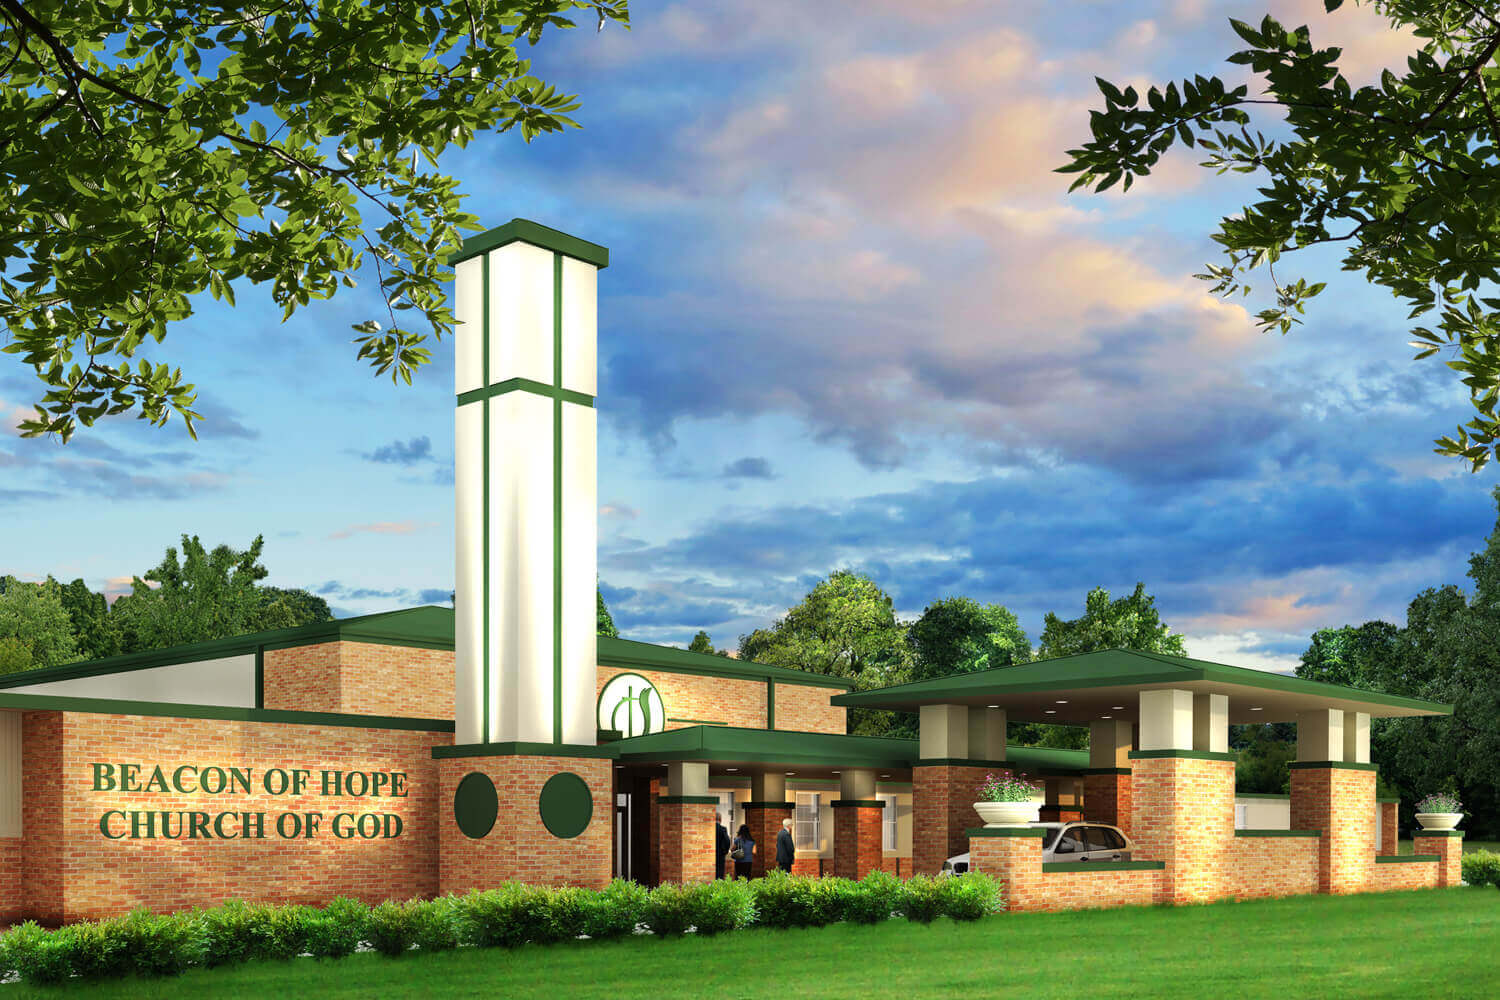 Beacon of Hope Church Designed by Foshee Architecture - Artist Depiction and Rendering of a New Front Entry Tower